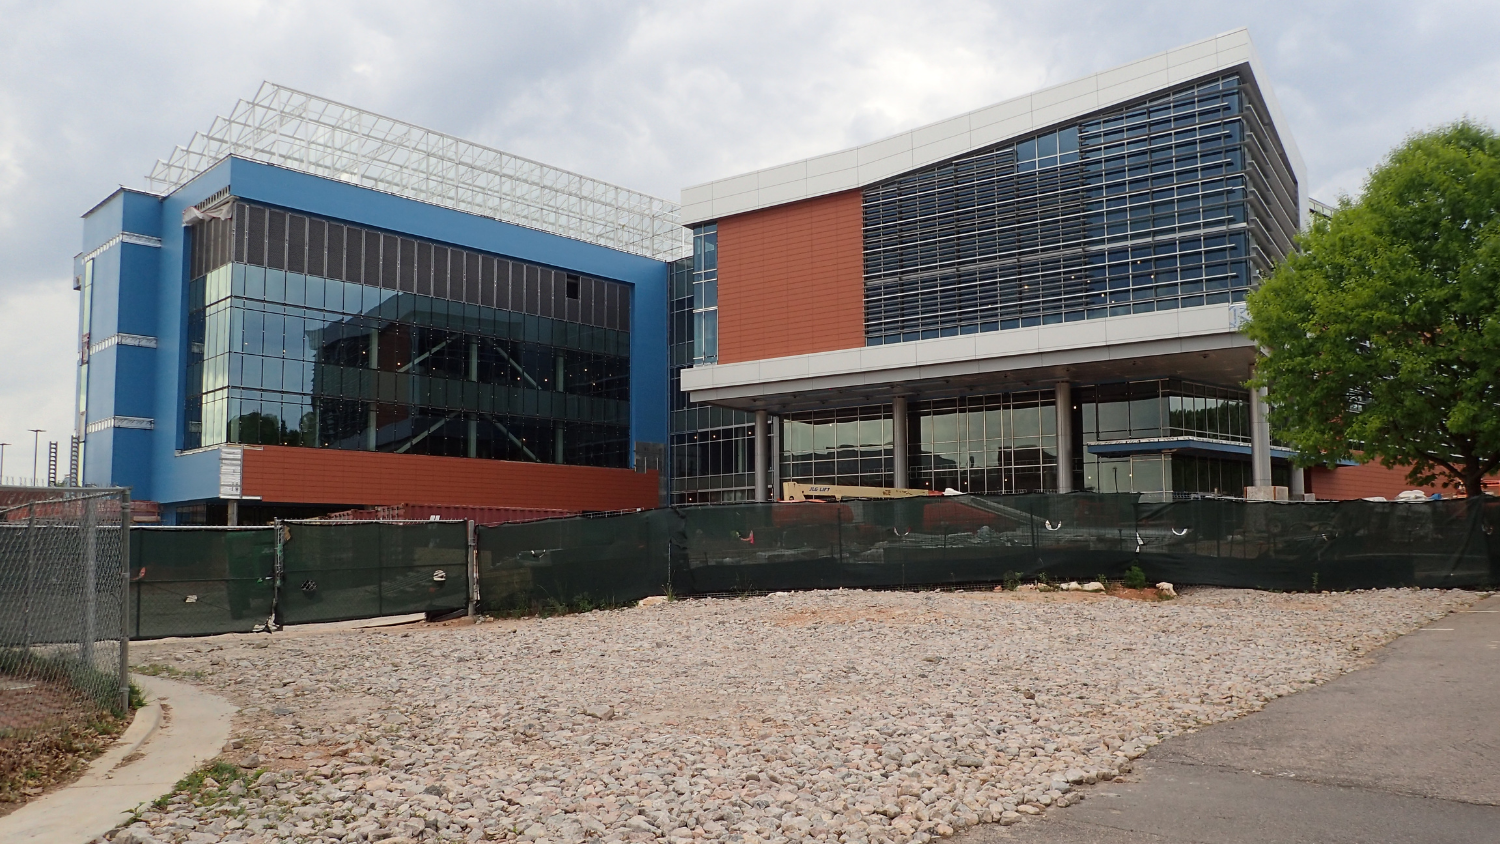 The new NC State Plant Sciences Building, scheduled for completion in early 2022.